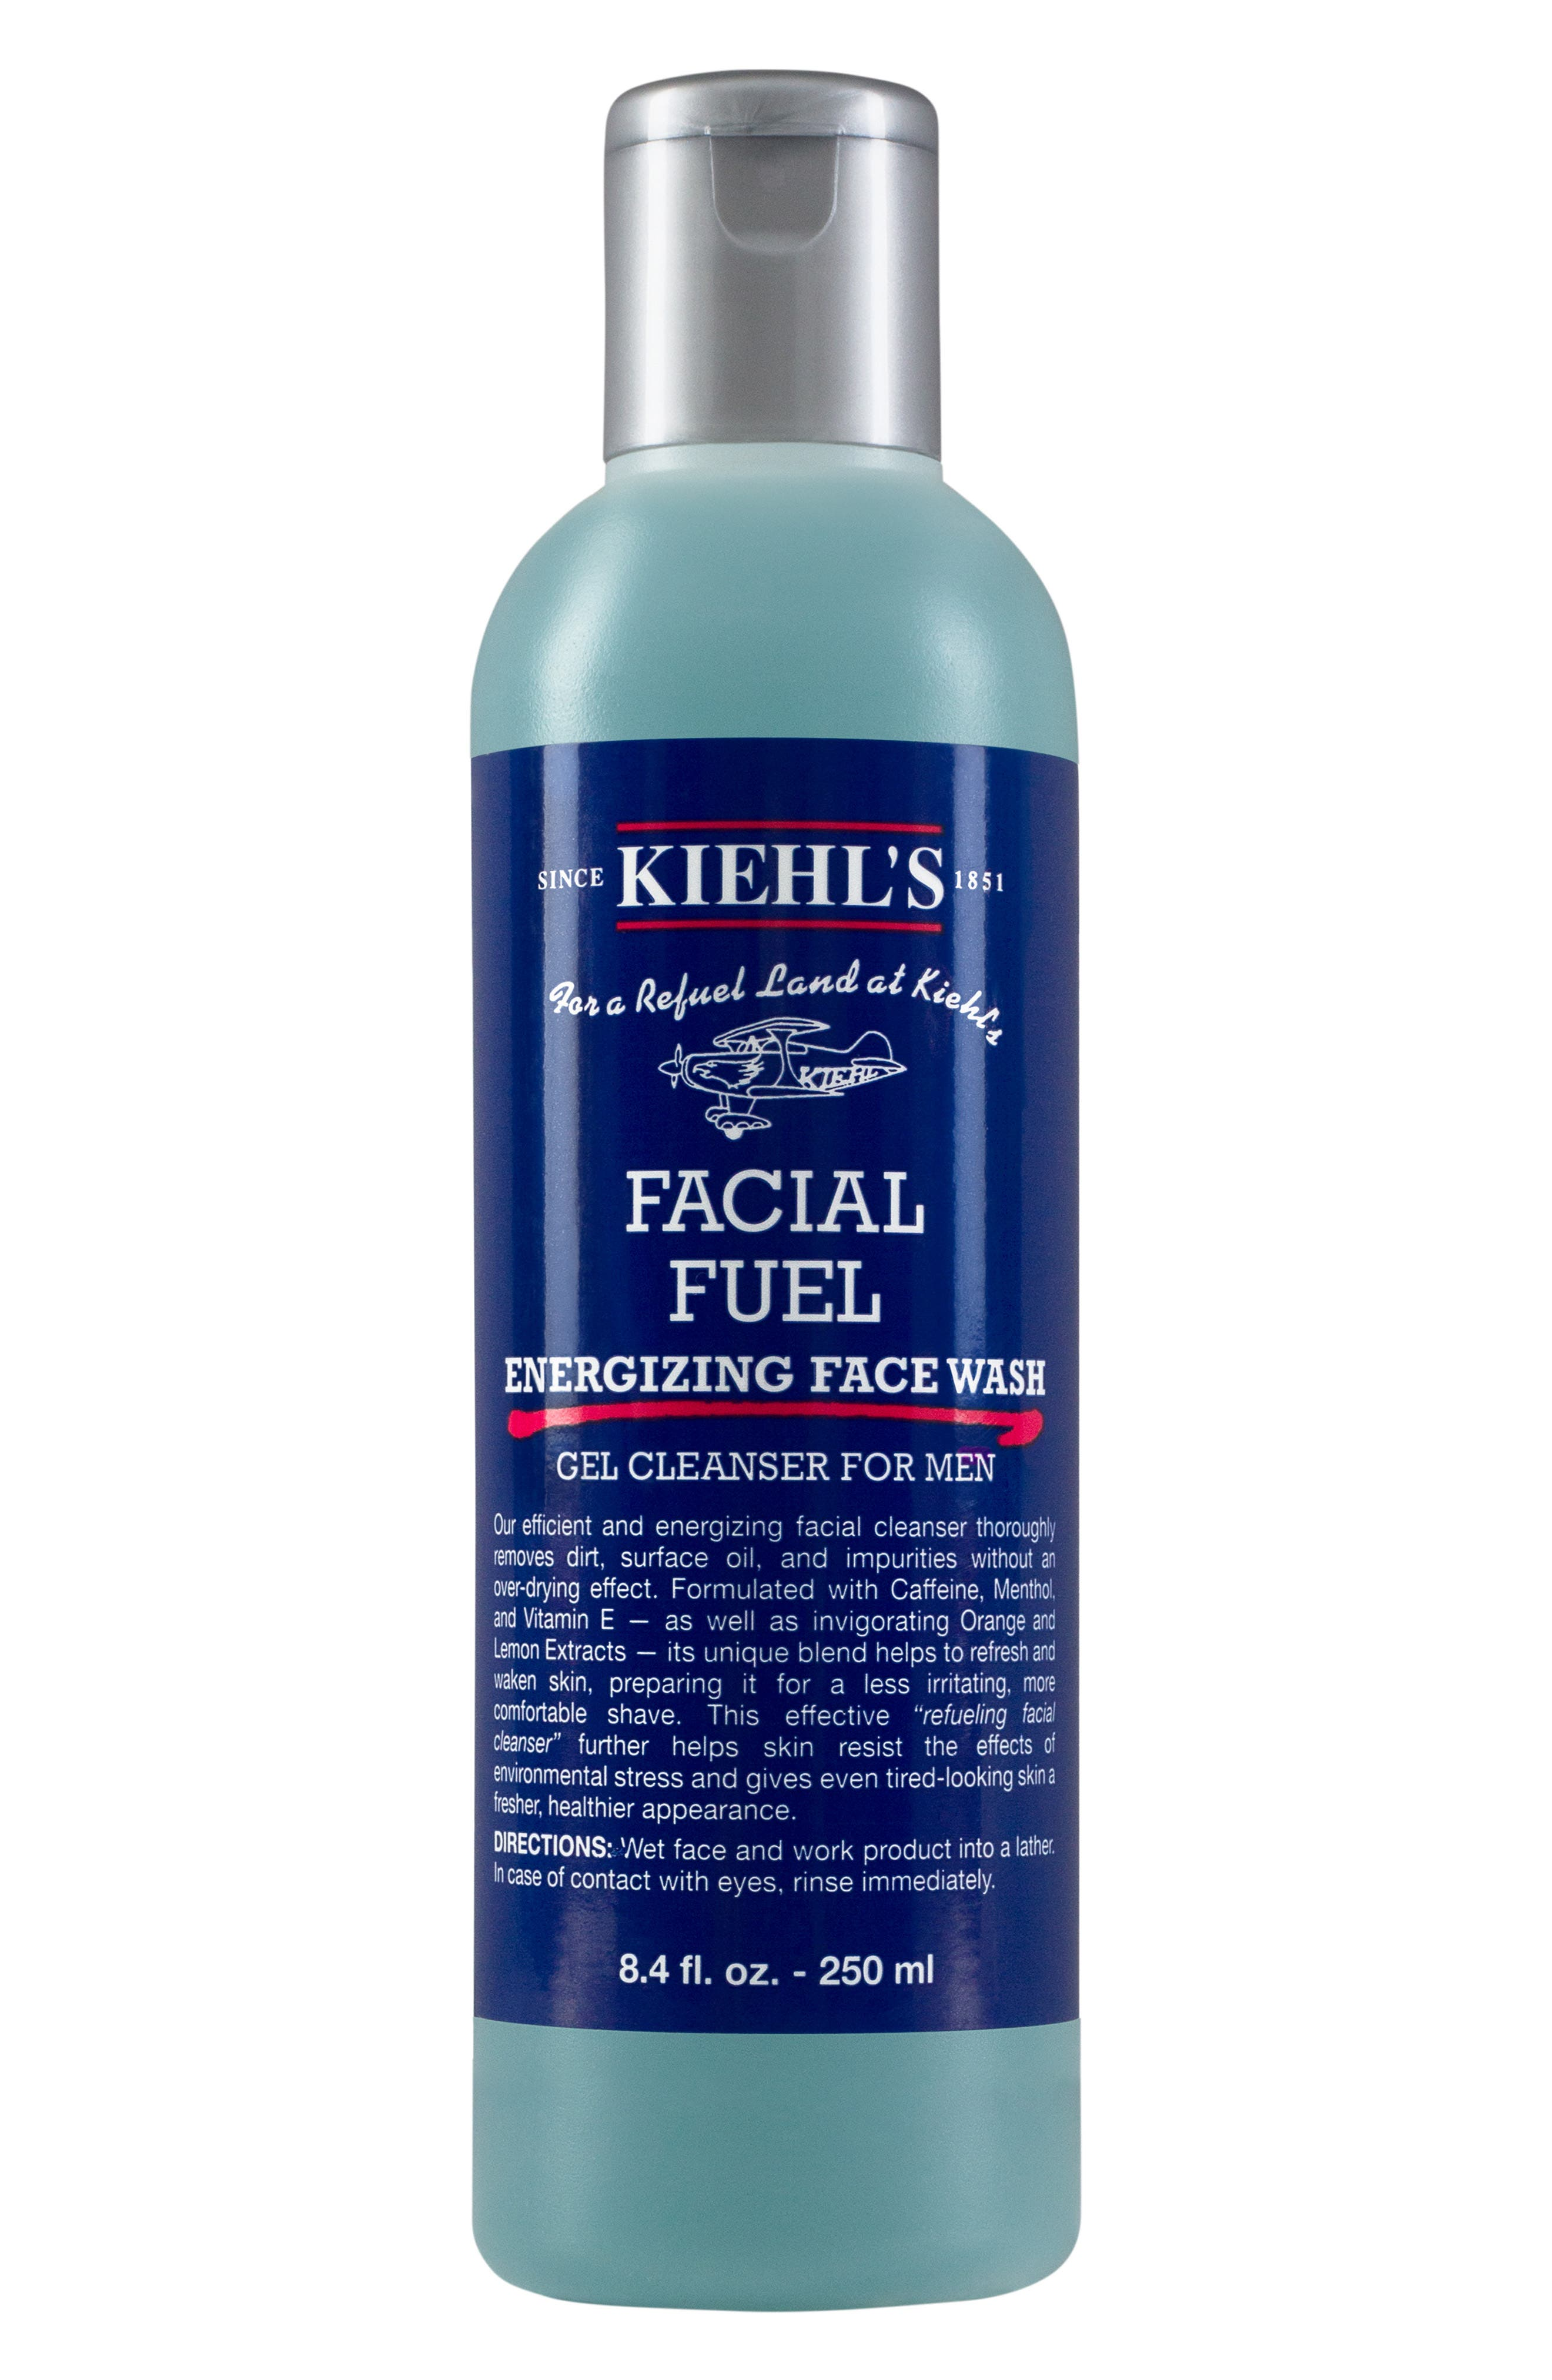 Main Image - Kiehl's Since 1851 Facial Fuel Energizing Face Wash